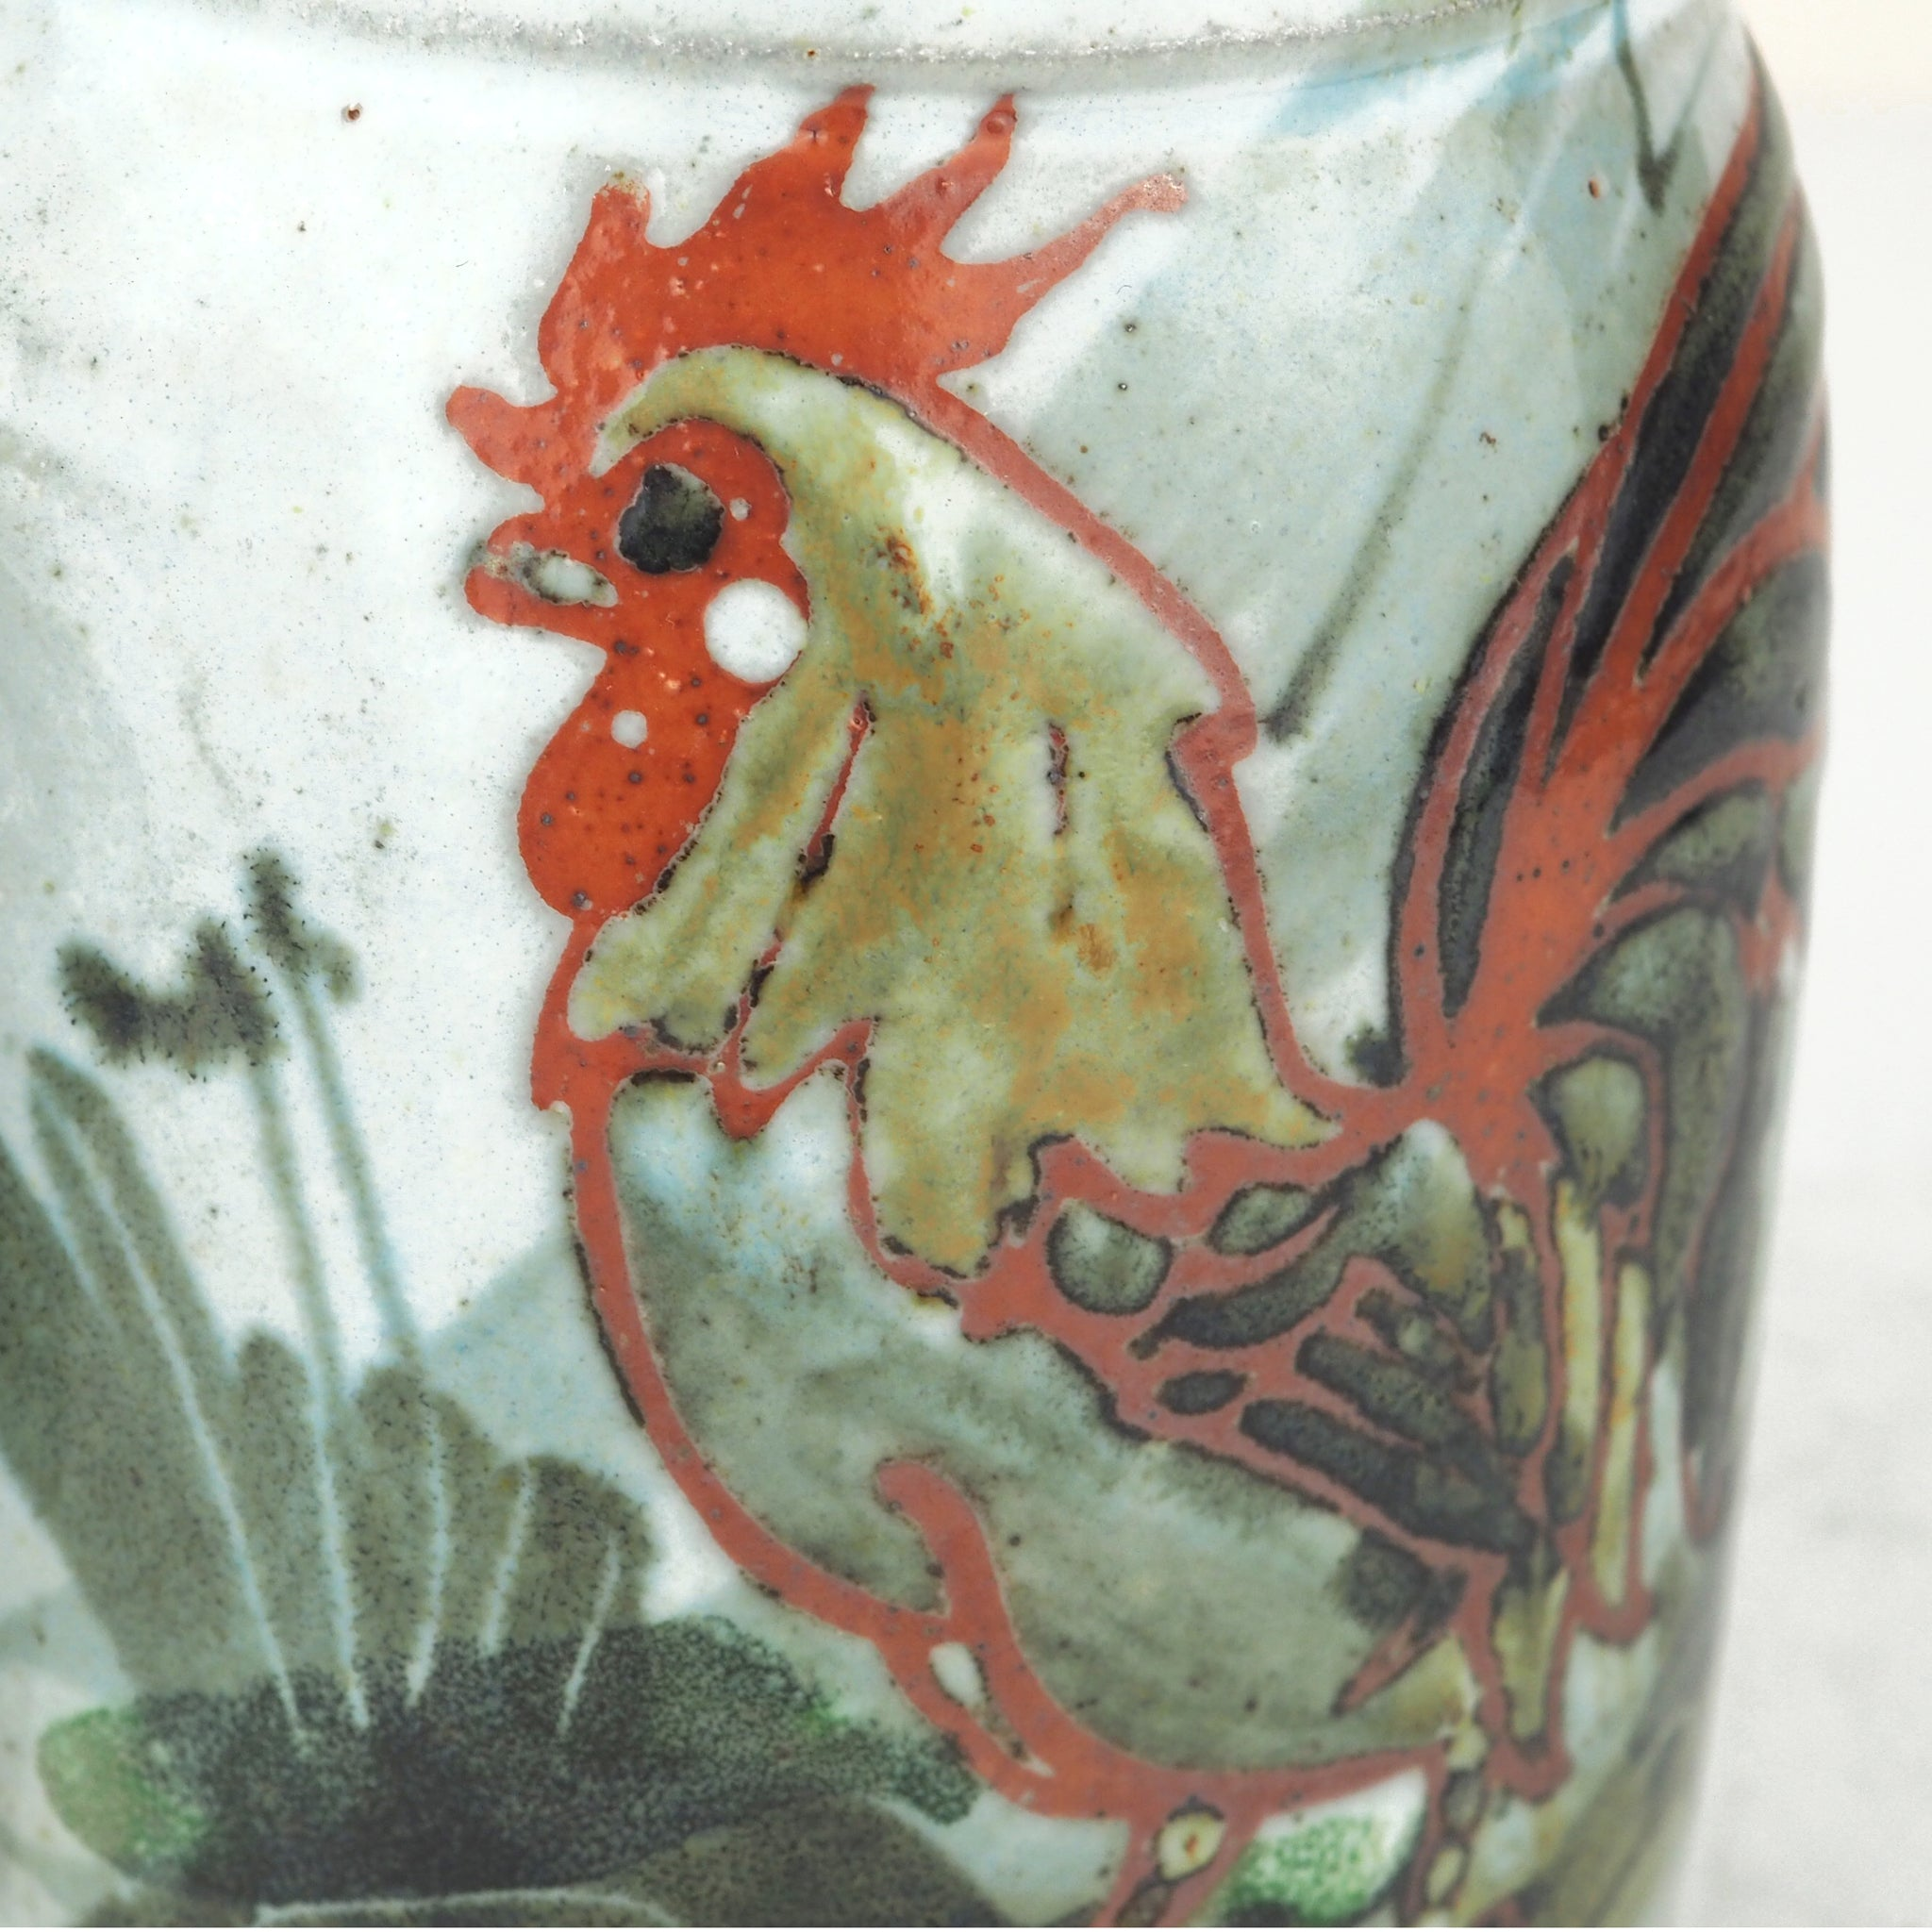 Kellam, Colin – Large Hand Painted Mug with Rooster Design | Colin Kellam | Primavera Gallery